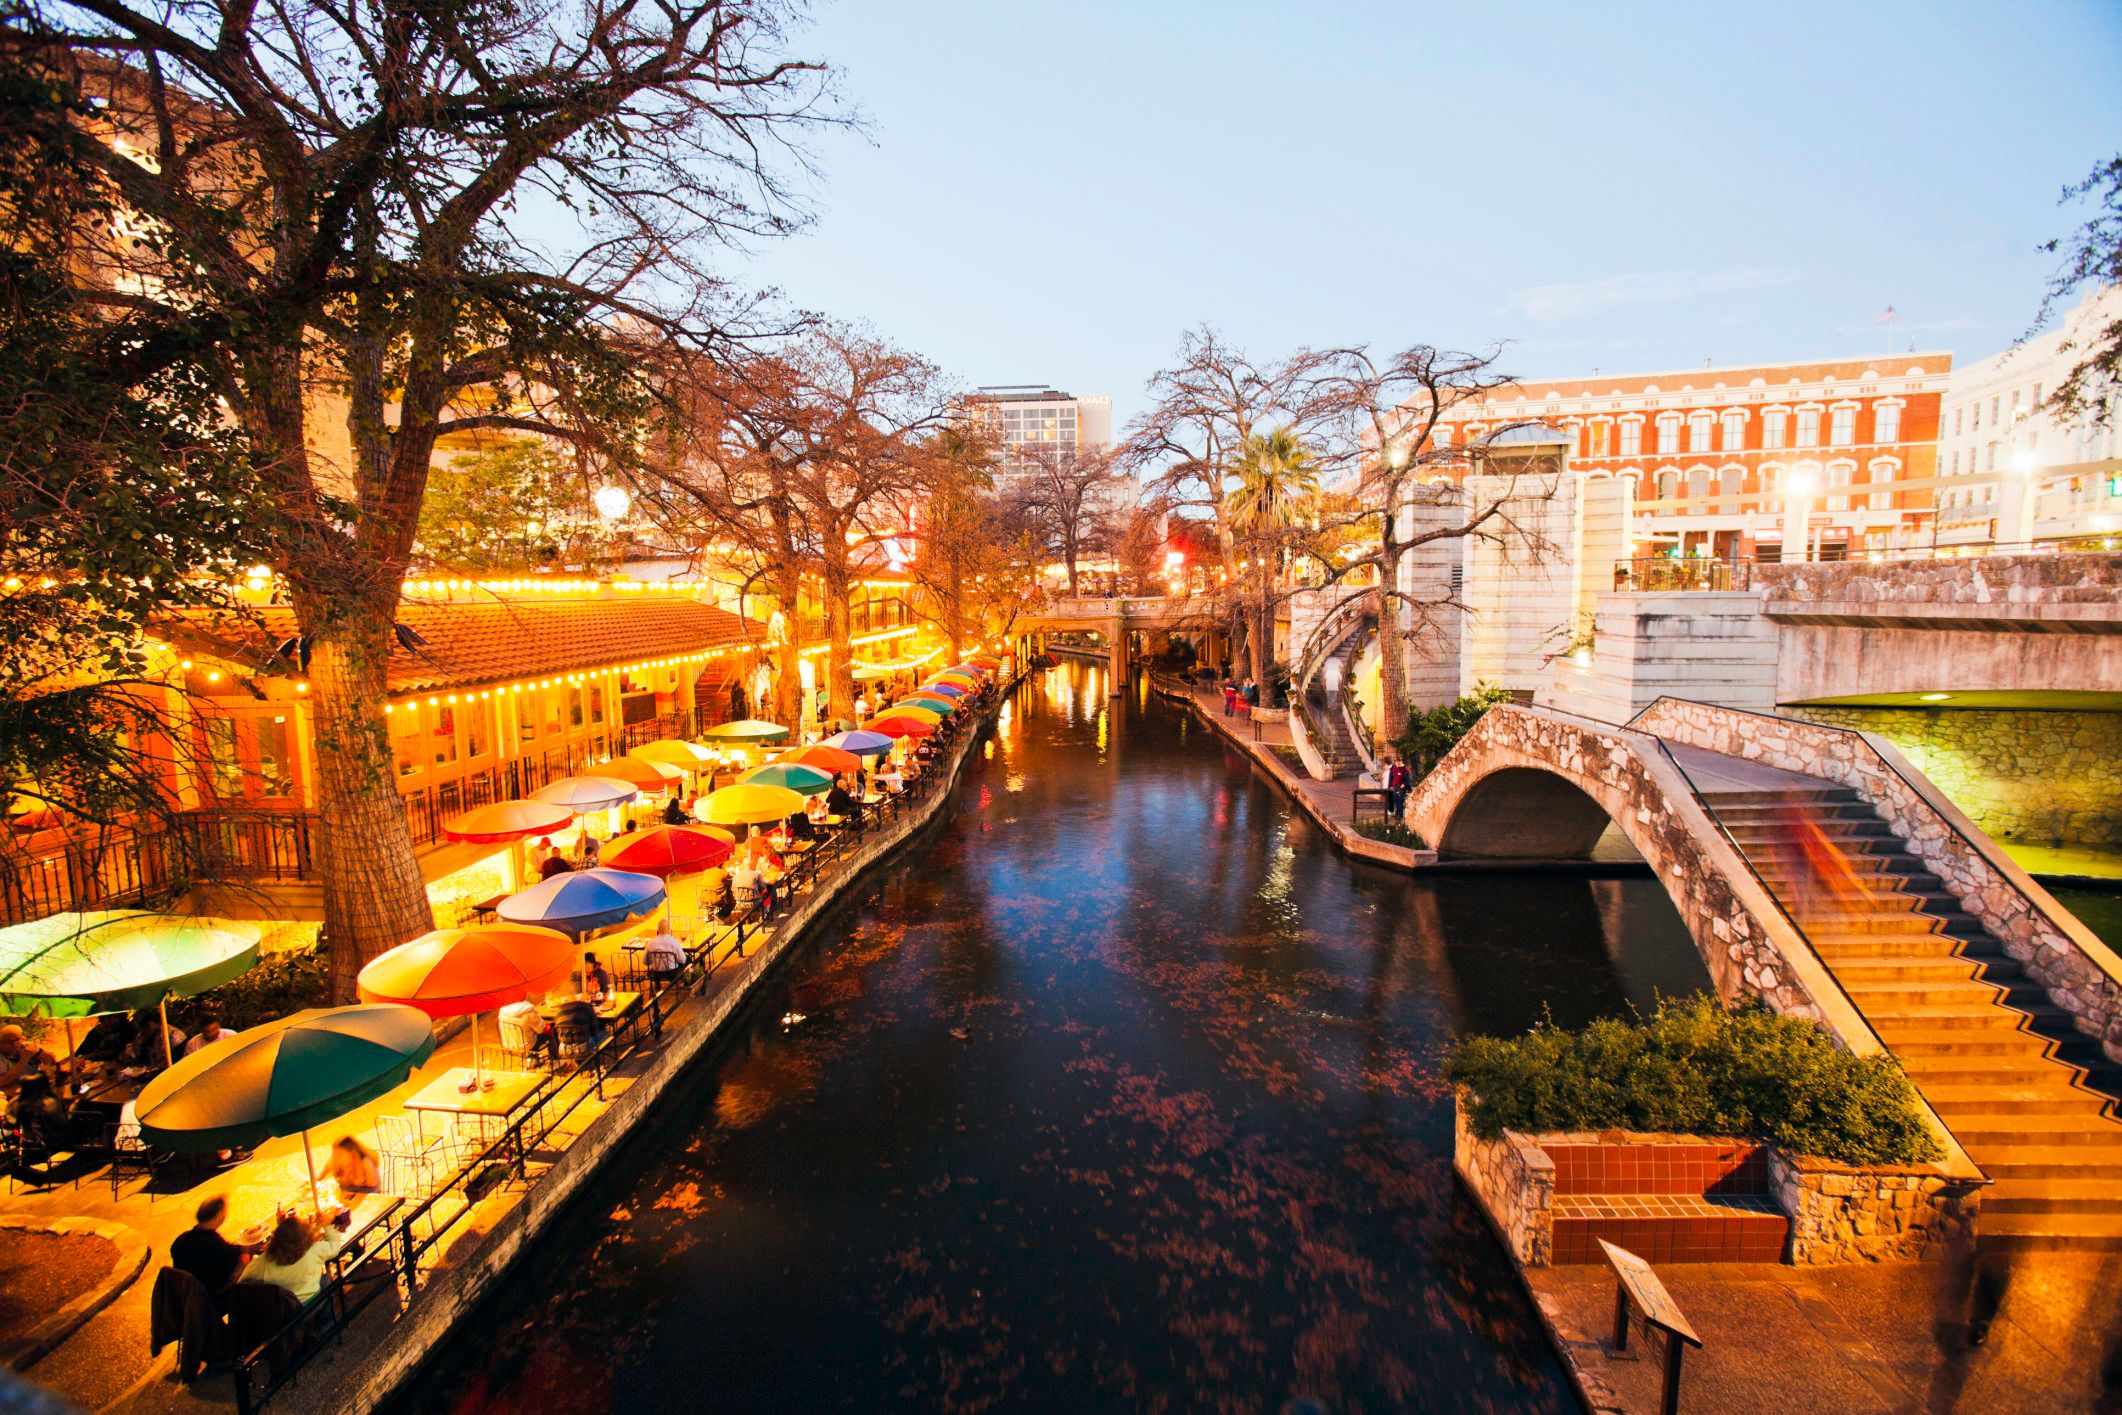 San Antonio River Walk of bridge and rainbow colored umbrellas at dusk, San Antonio, Texas, USA